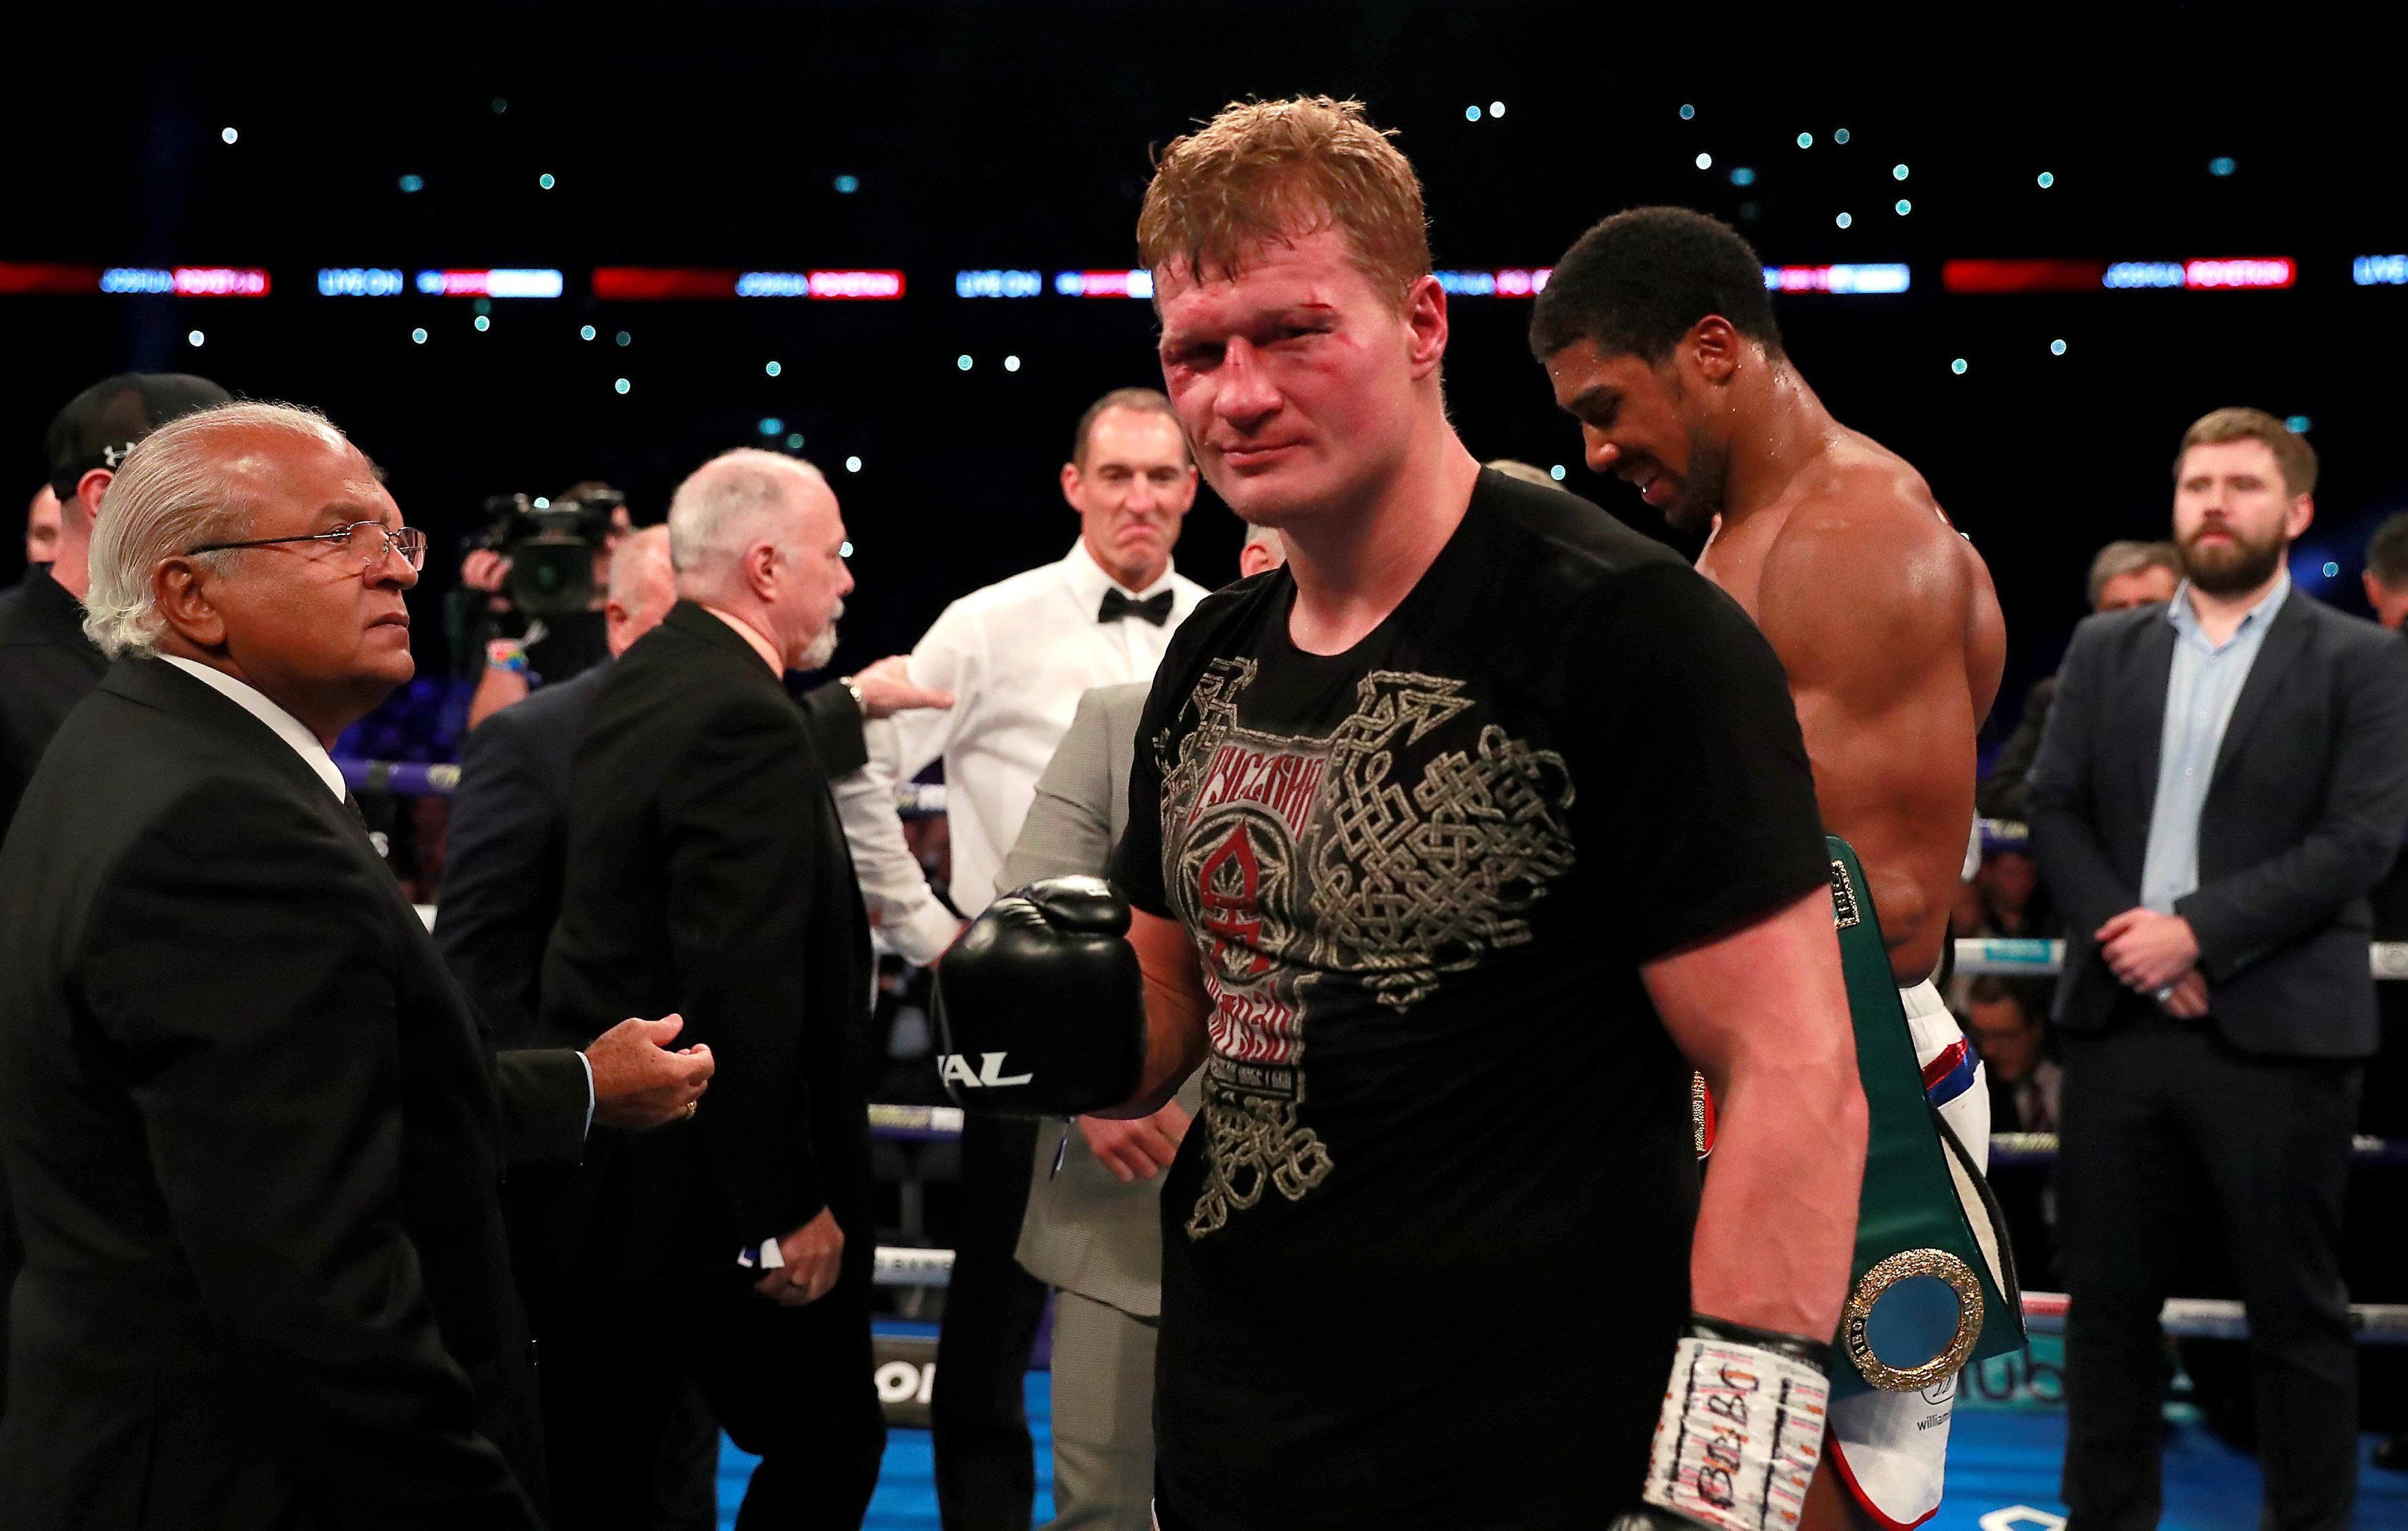 Povetkin was a game opponent for Joshua and was causing problems for the champion in the early rounds